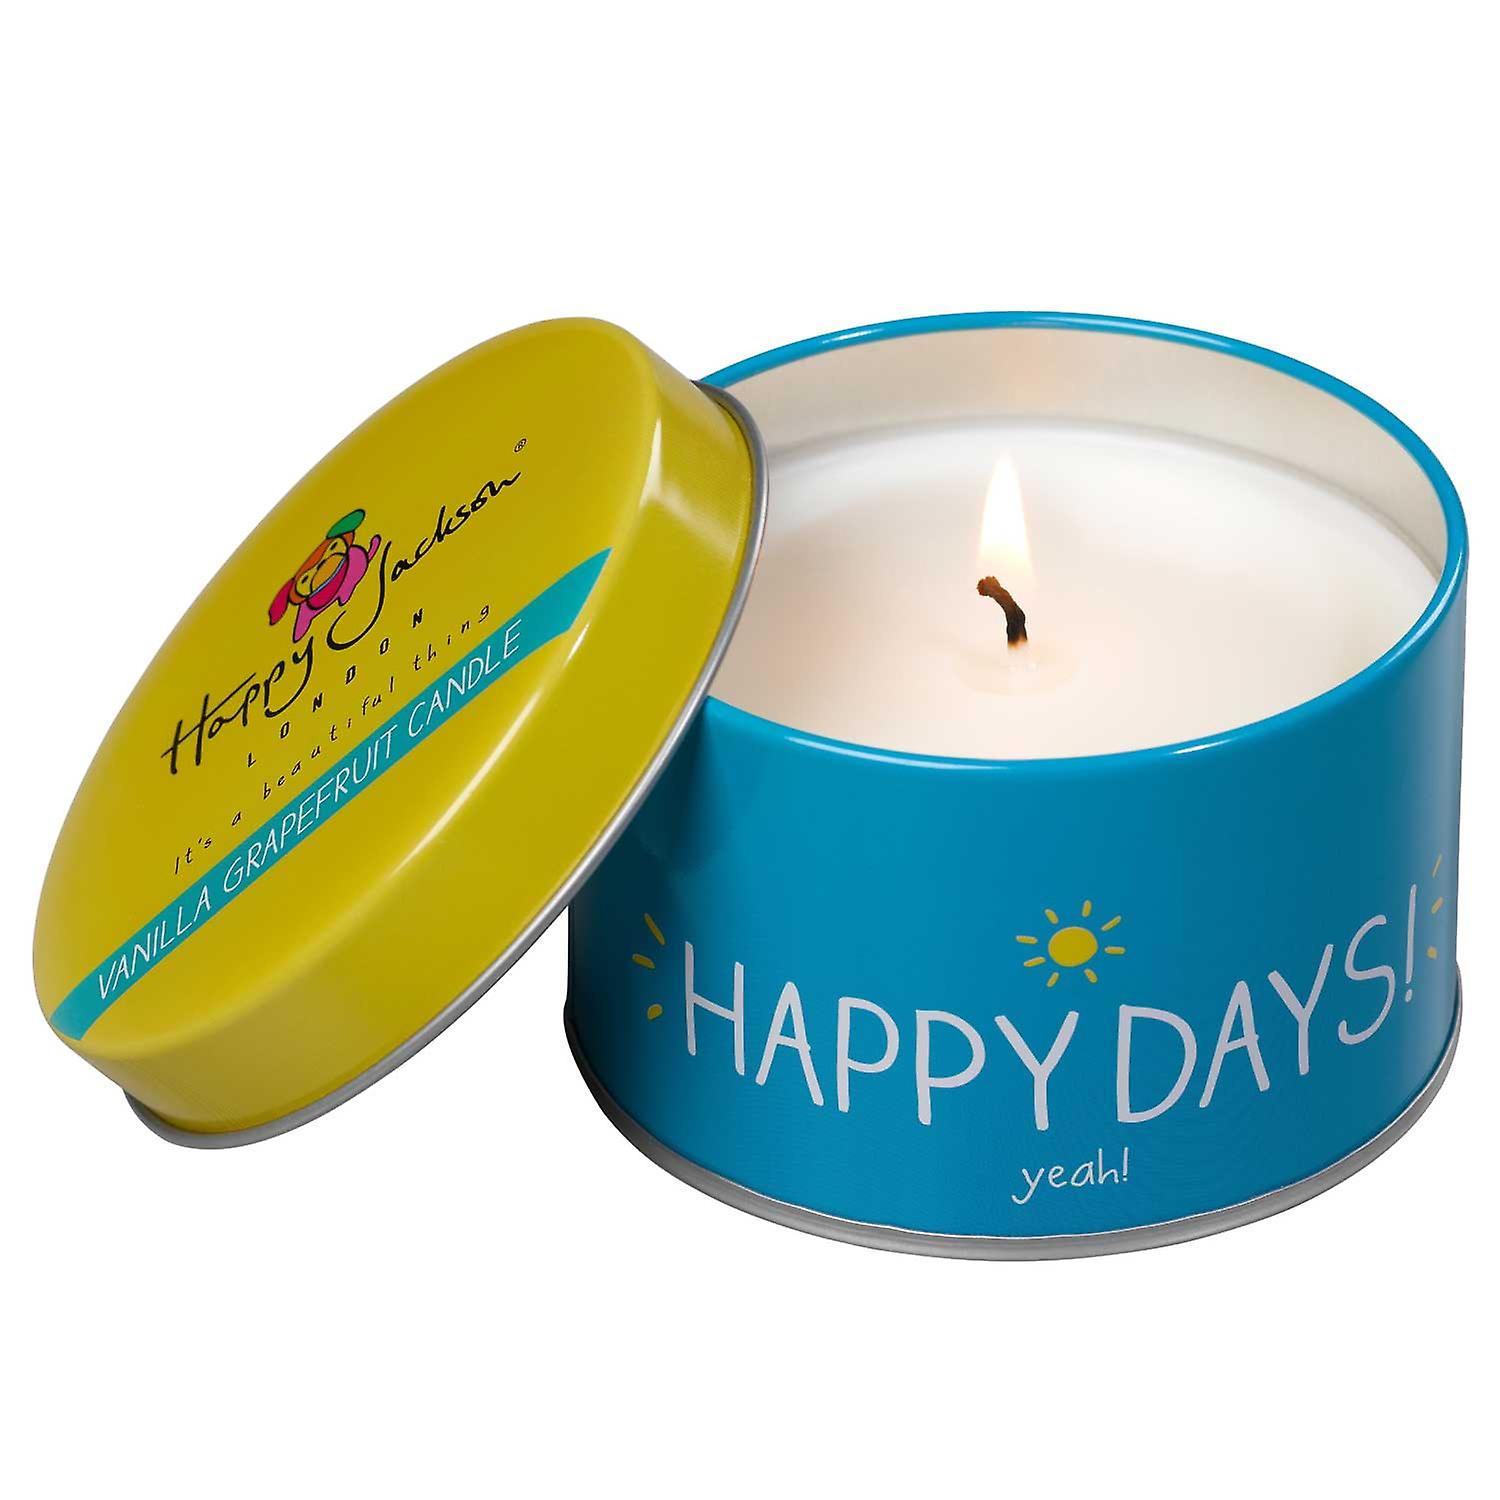 Happy Days! Yeah! Candle by Happy Jackson and Wild & Wolf